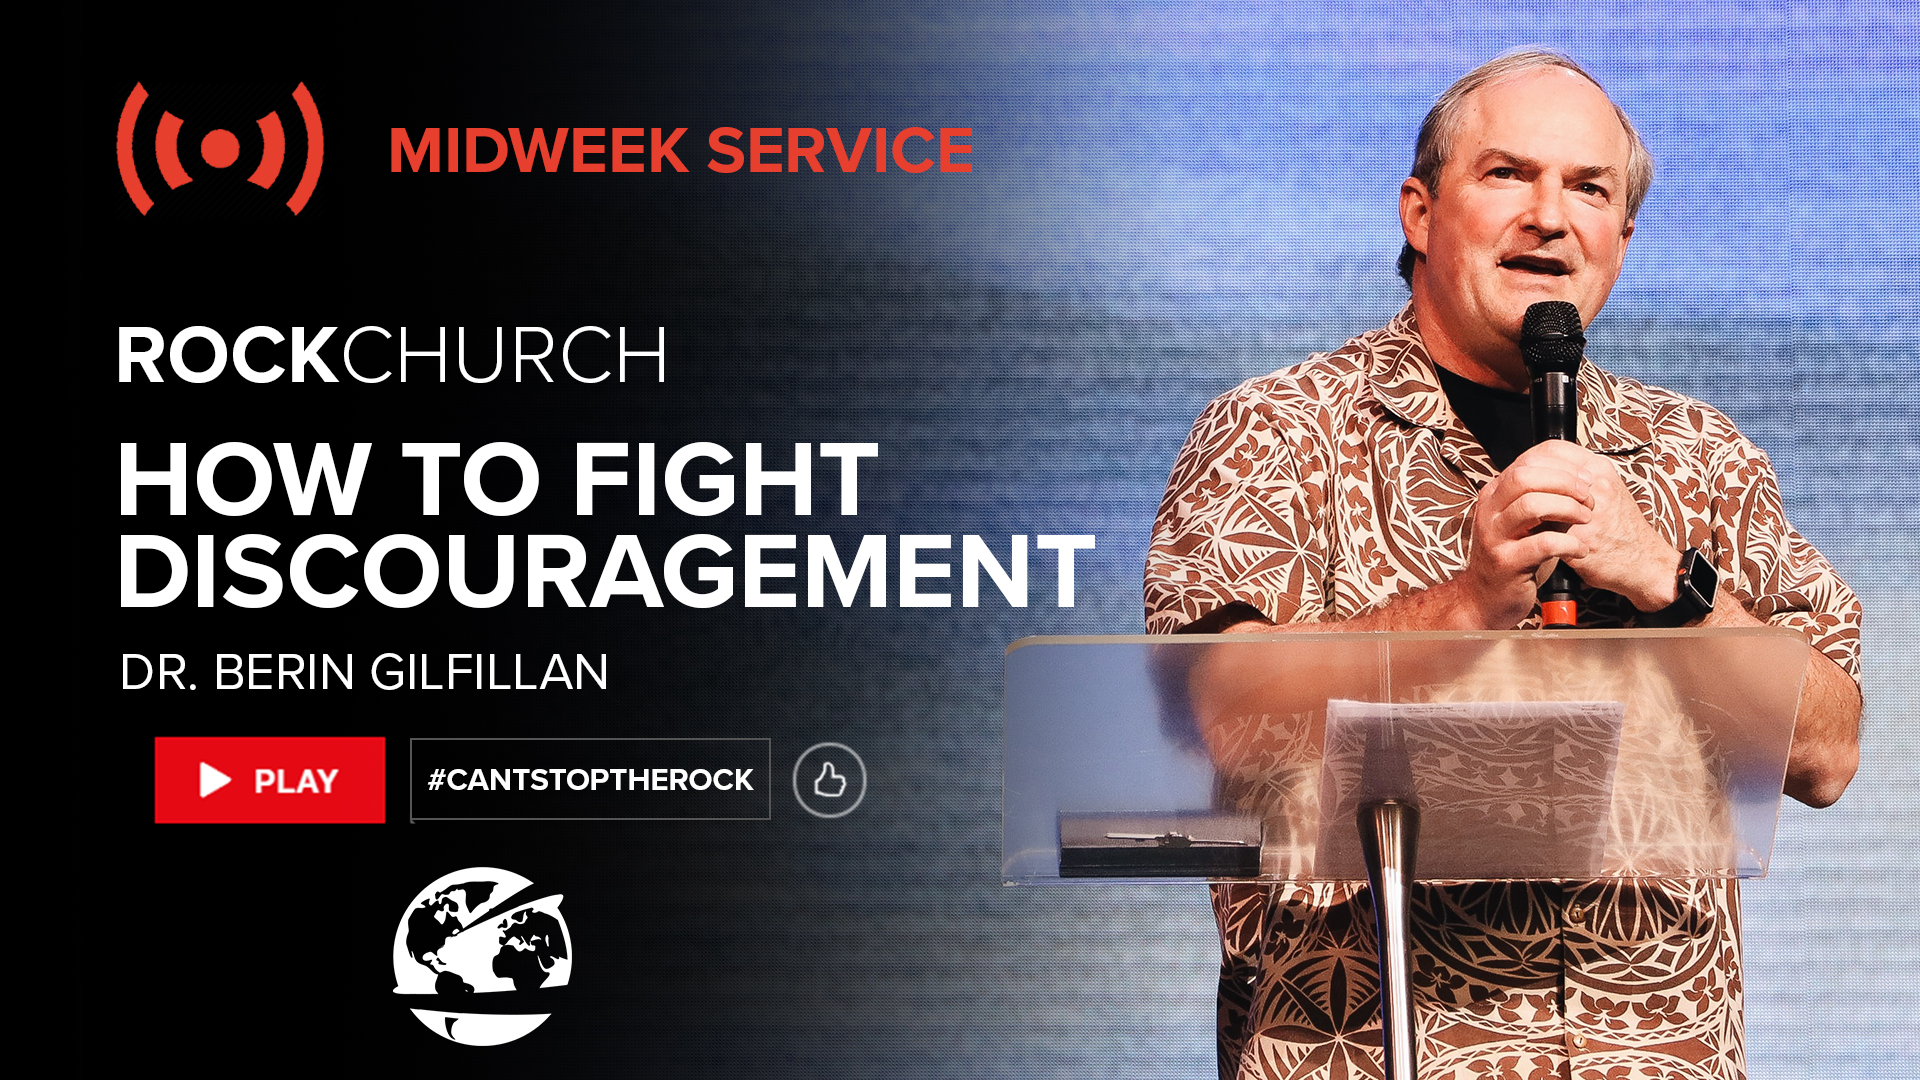 Watch How to Fight Discouragement